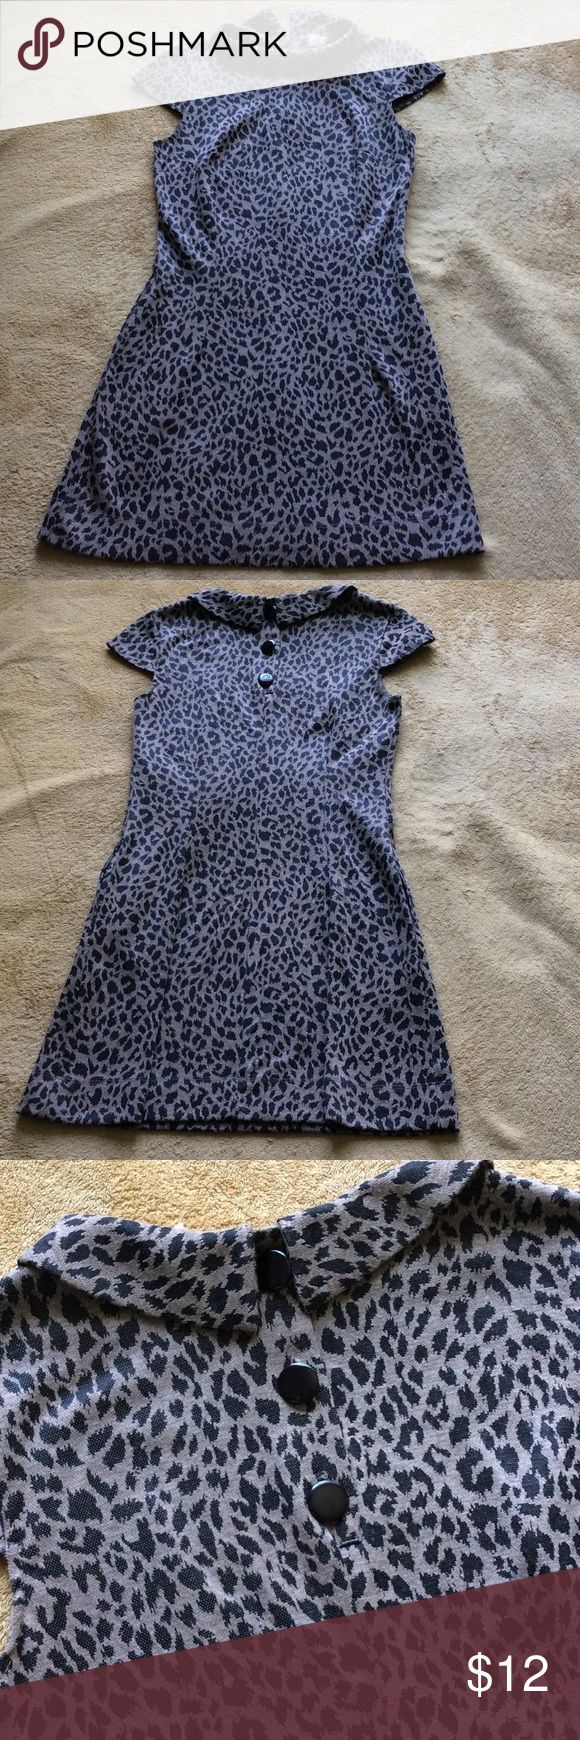 Animal print Mini dress size S Animal print Mini dress size S. It's a gently used mini dress. It's a vintage style kind of dress with 3 bottom in the back and two open side pockets. This dress has no stain or cut. Length 32 inches. AUW Dresses Mini